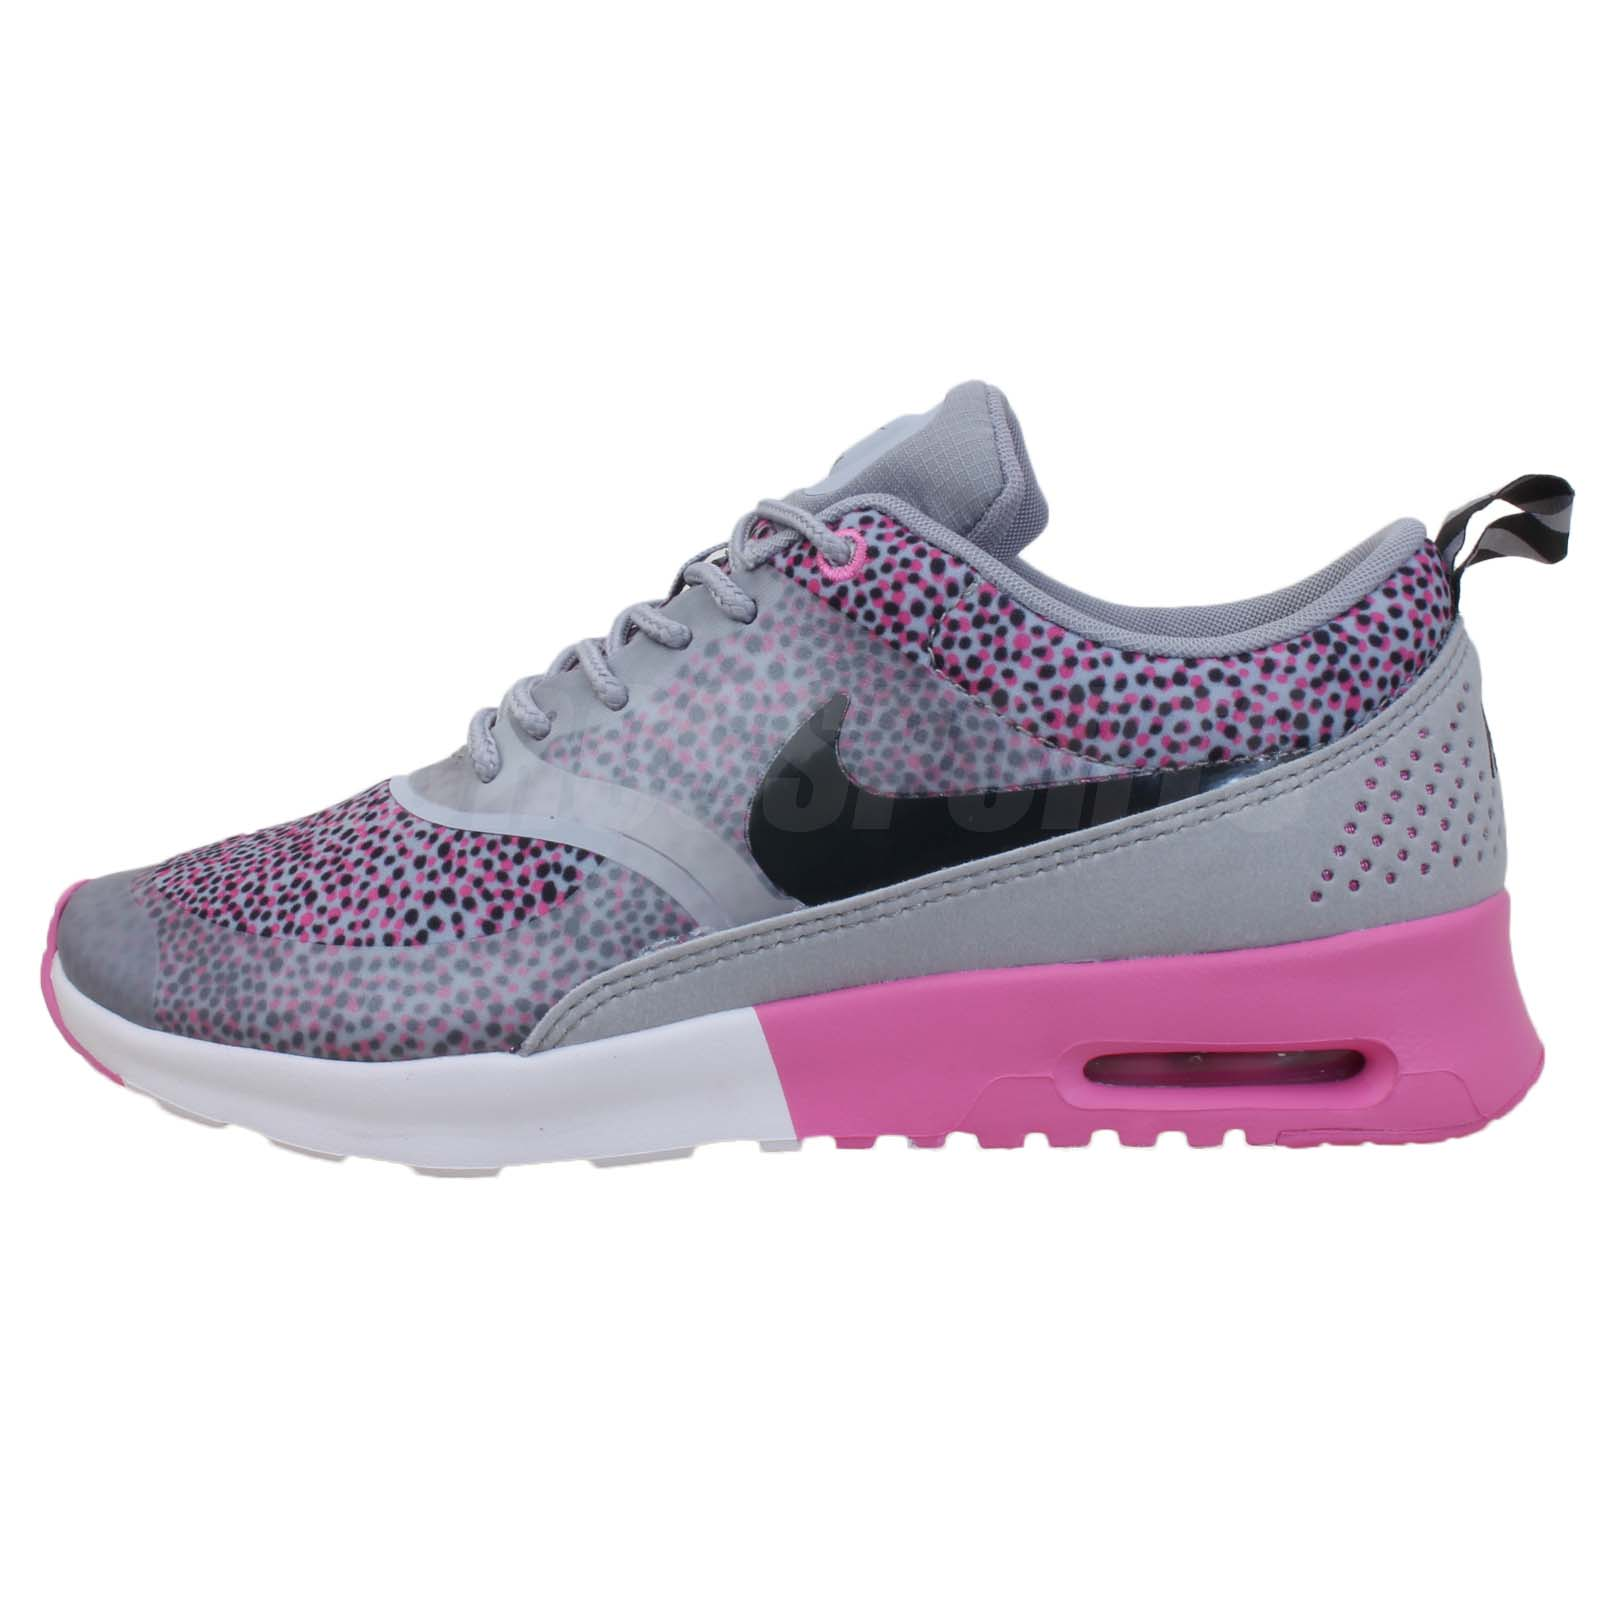 Unique Find This Pin And More On Womens Fashion Running Shoes StoreSports Shoes Outlet Only Press The Picture Link Get It Immediately!nike Shoes Nike Free Runs Nike Air Force Discount Nikes Nike Shox Nike Zoom Nike Basketball Shoes